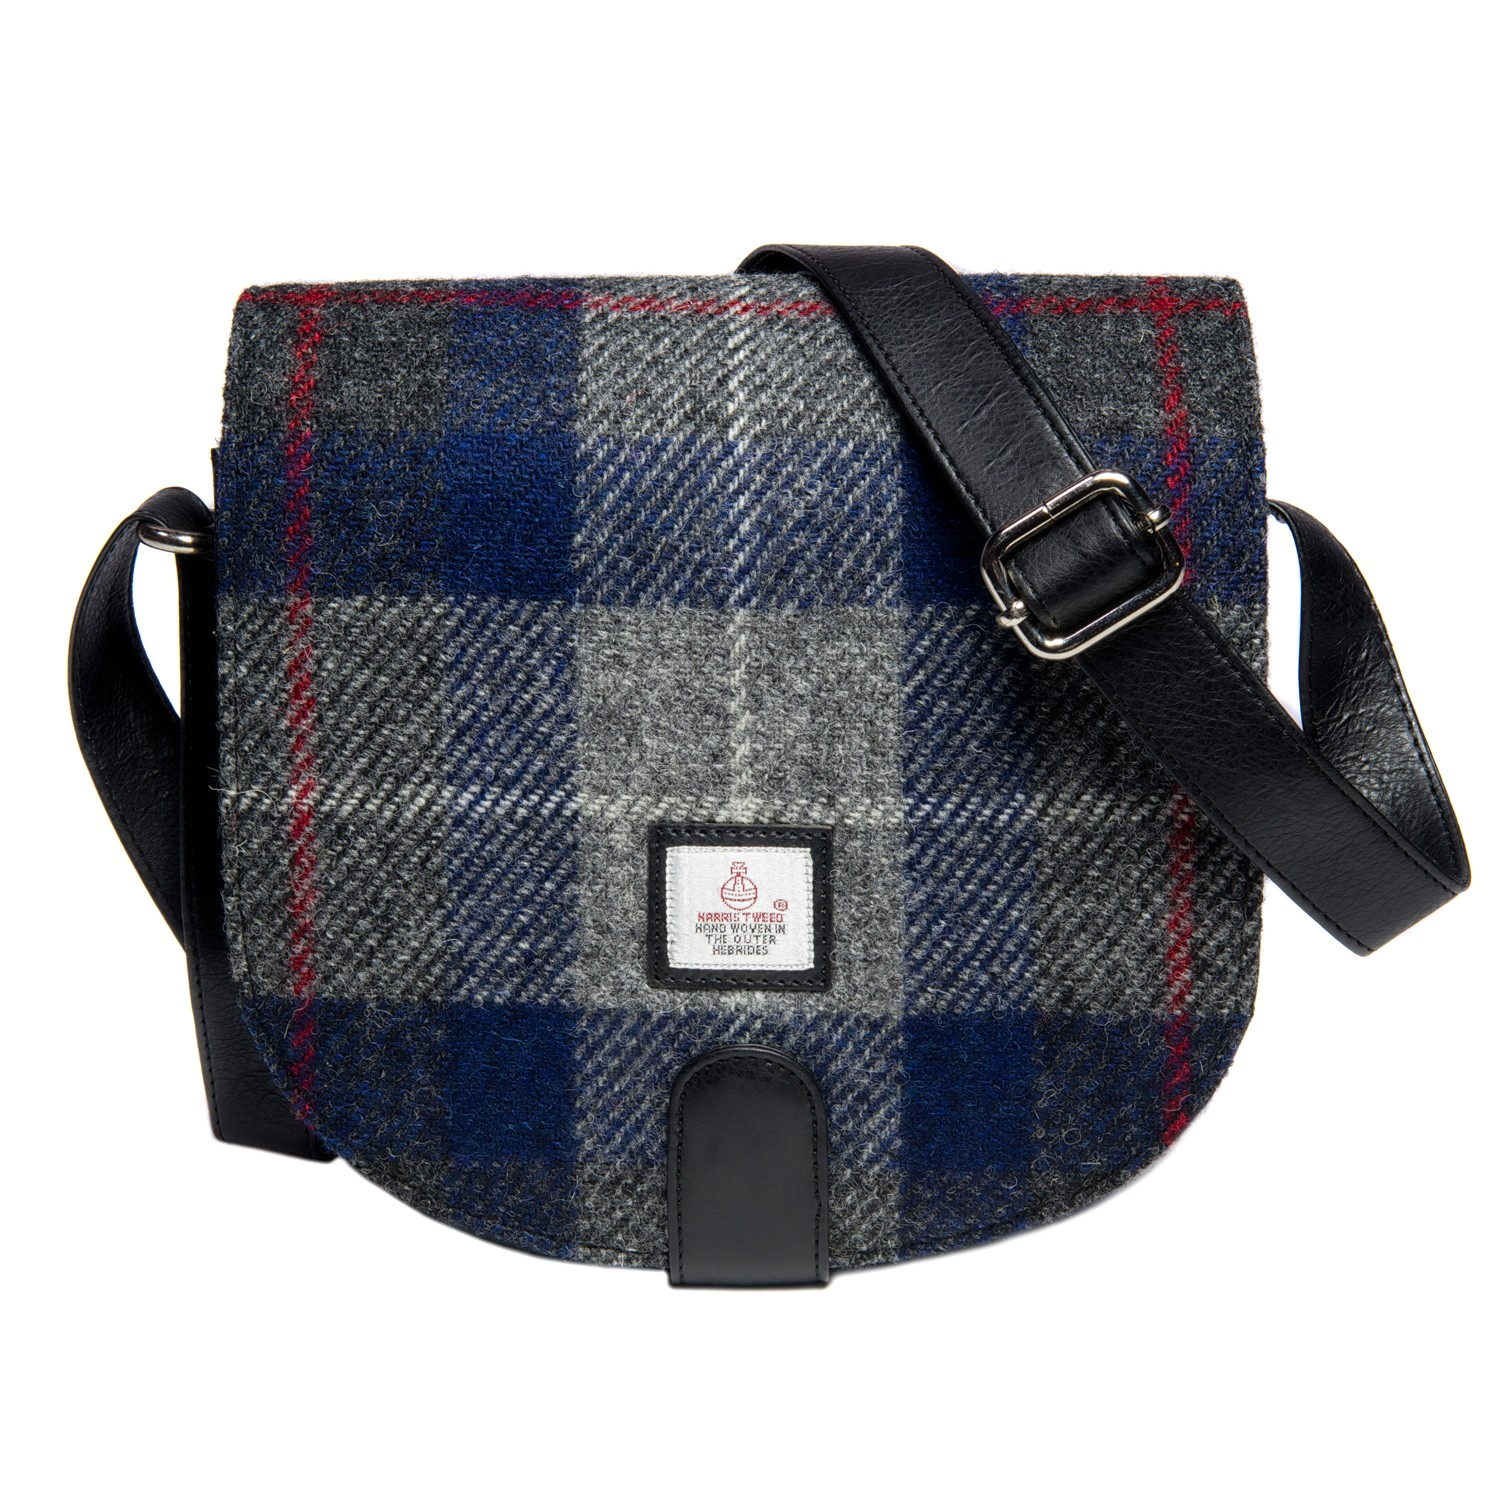 Maccessori Harris Tweed Small Cross Body Saddle Bag in Blue Check